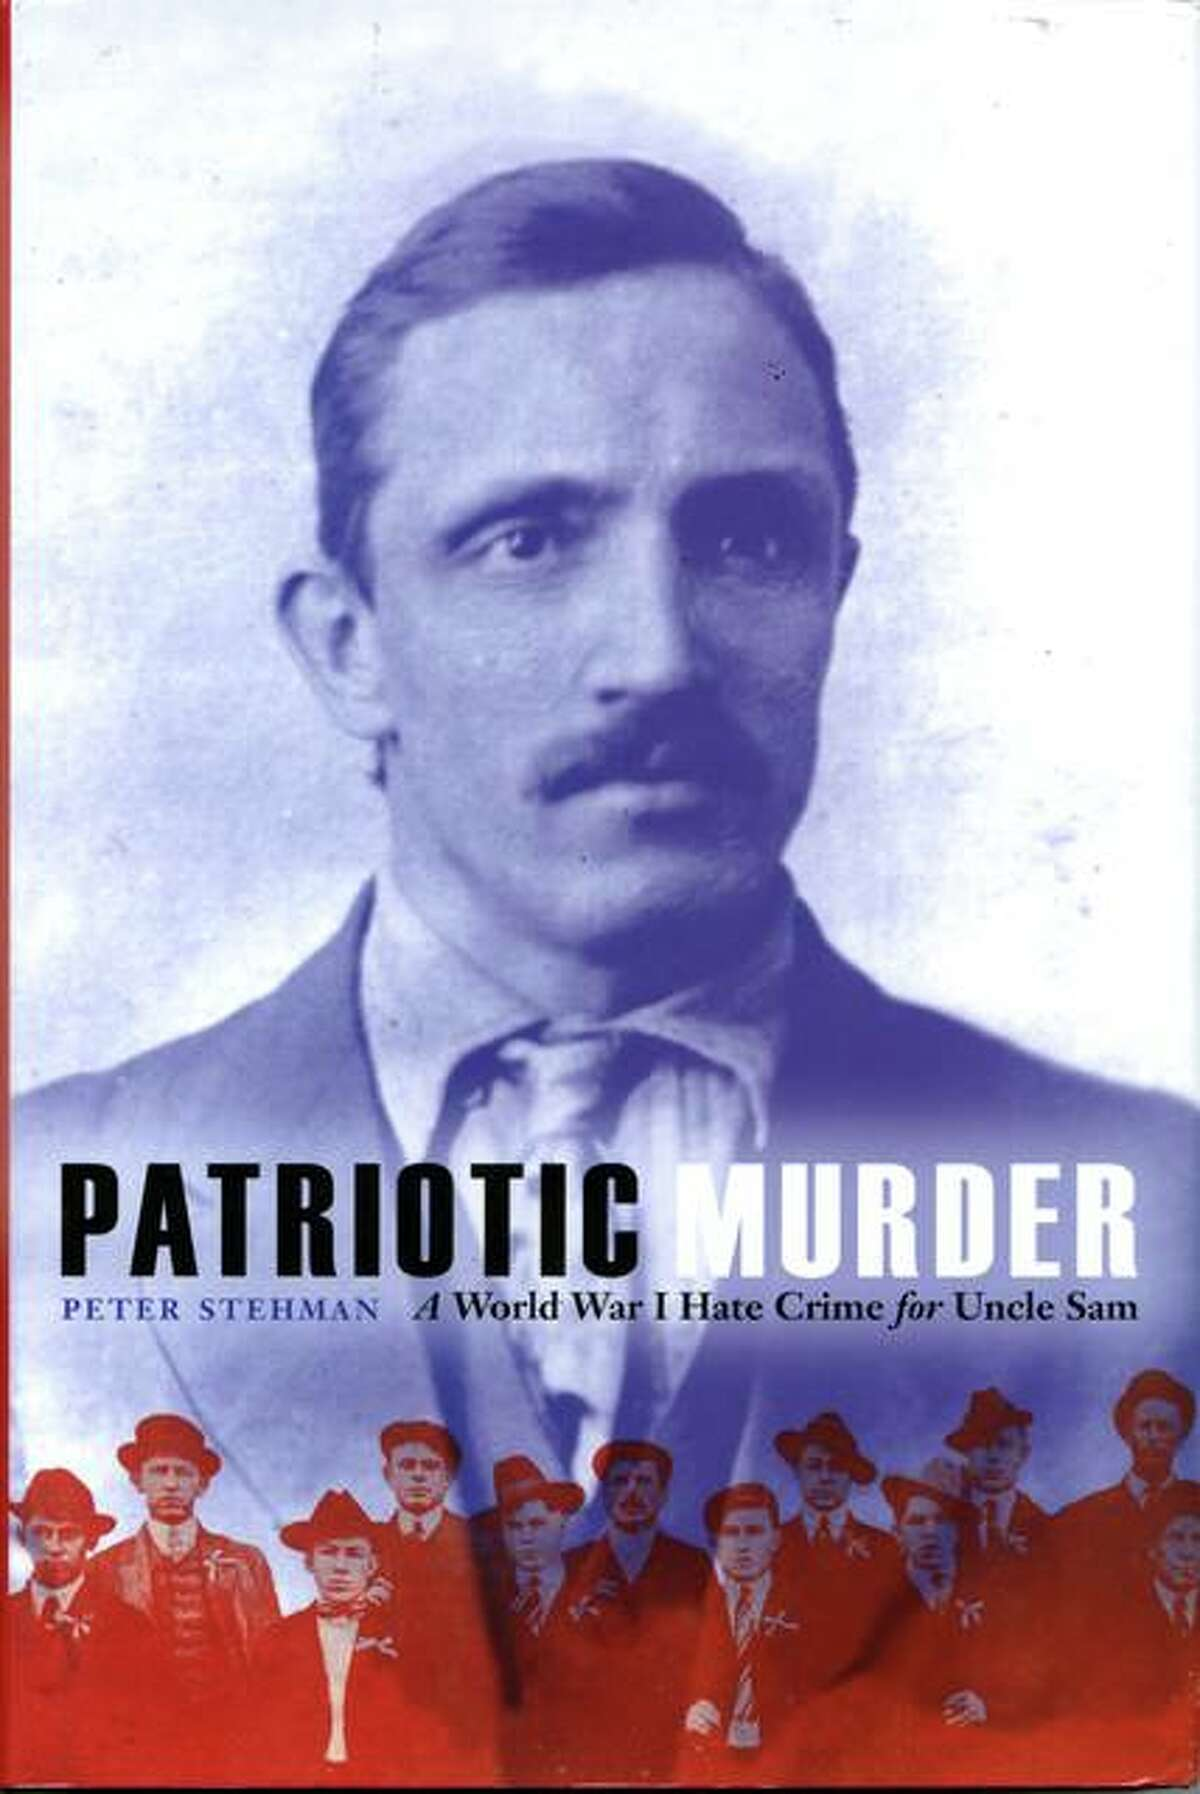 """Author Peter Stehman on Sunday will discuss his book, """"Patriotic Murder,"""" about the 1918 lynching of Robert Praeger in Collinsville. The event is sponsored by the Madison County Historical Society."""